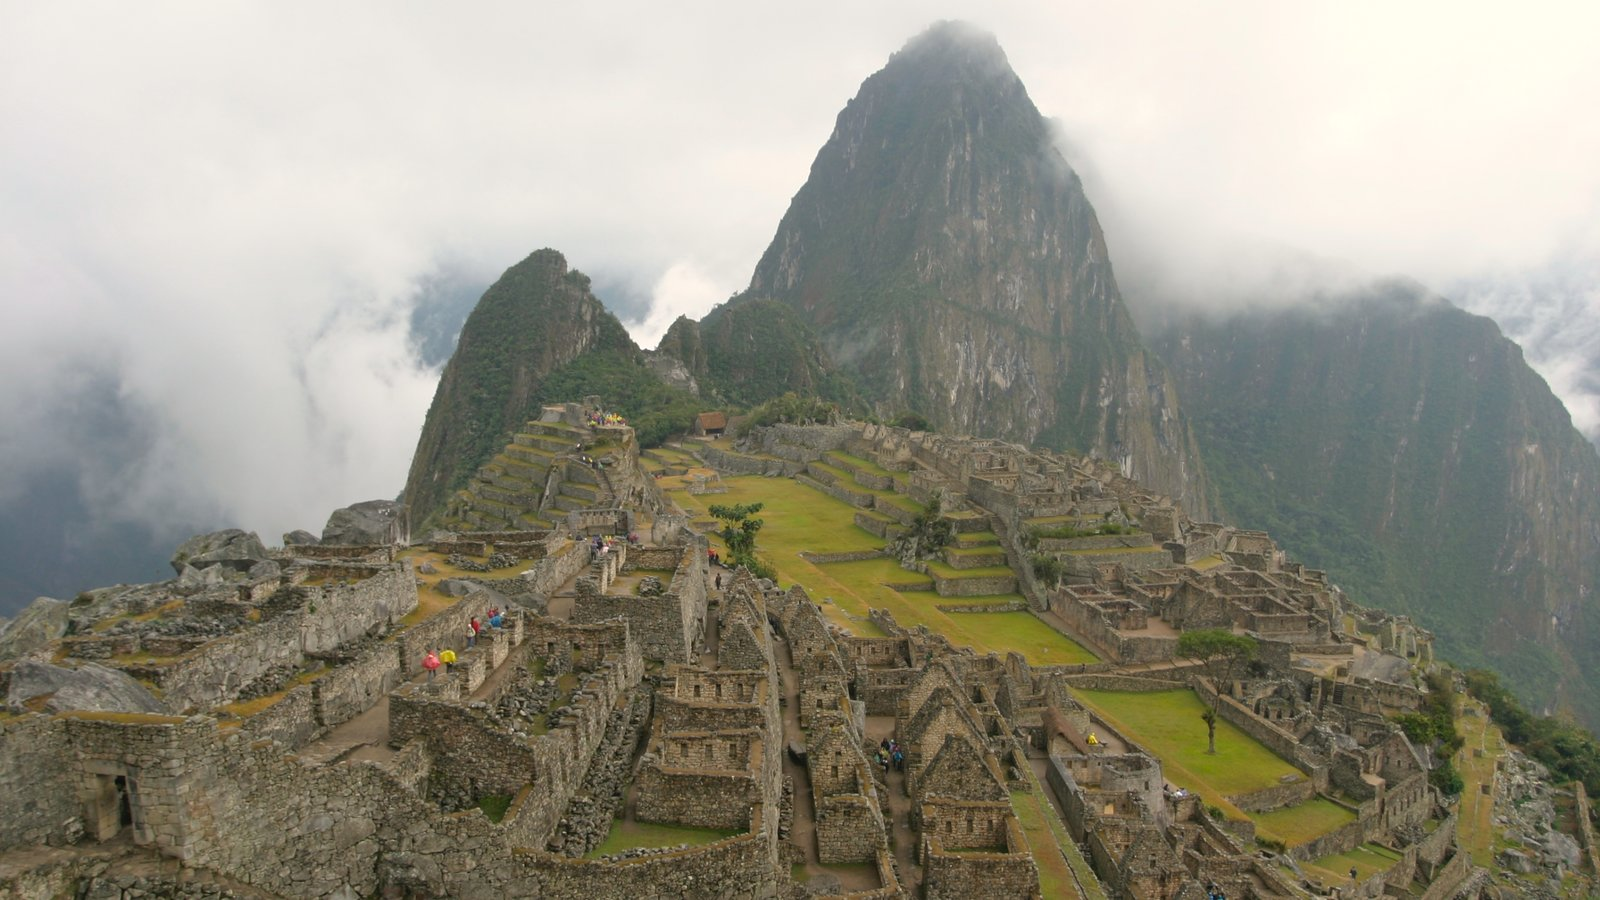 tourism effects on machu picchu -machu picchu has been designed a world heritage site to protect it from large numbers of tourists economic effects - negative -the hotels such as the sanctury lodge at machu picchu is owned by orient-express hotels group.